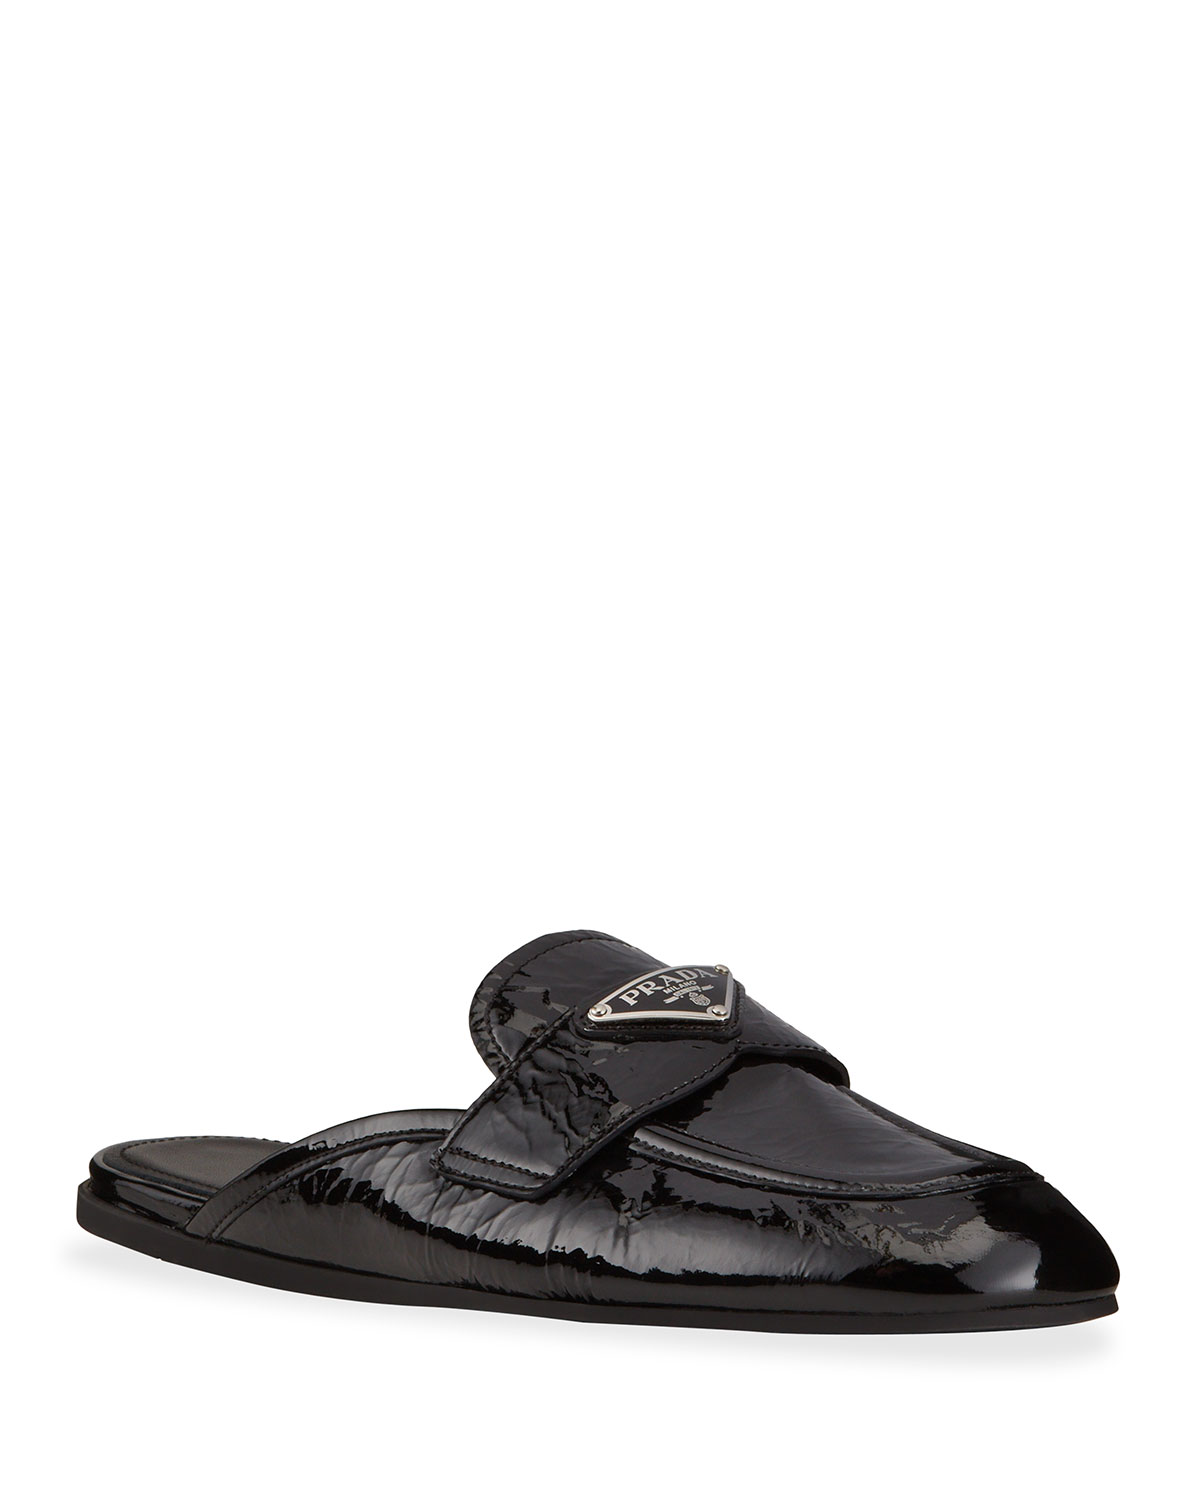 Prada PATENT LEATHER LOAFER MULES